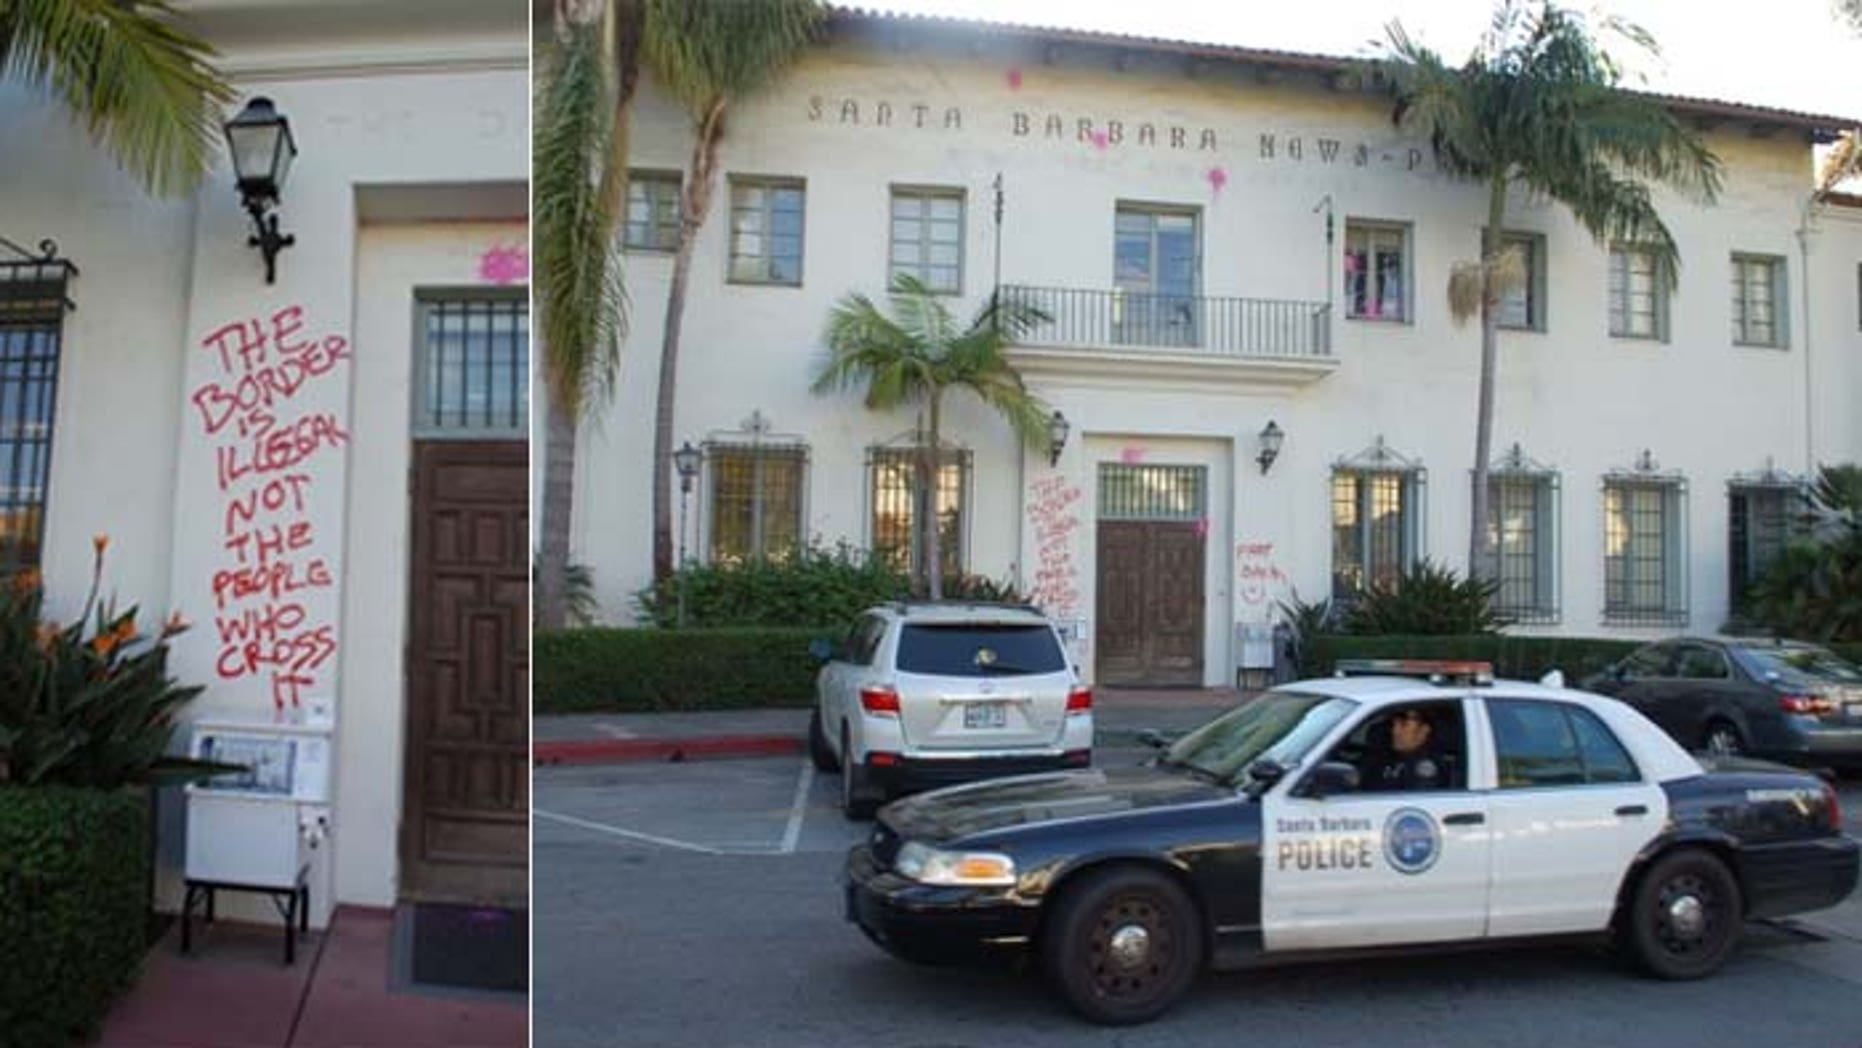 The headquarters of the Santa Barbara News-Press in California was vandalized, apparently by pro-illegal immigration activists.